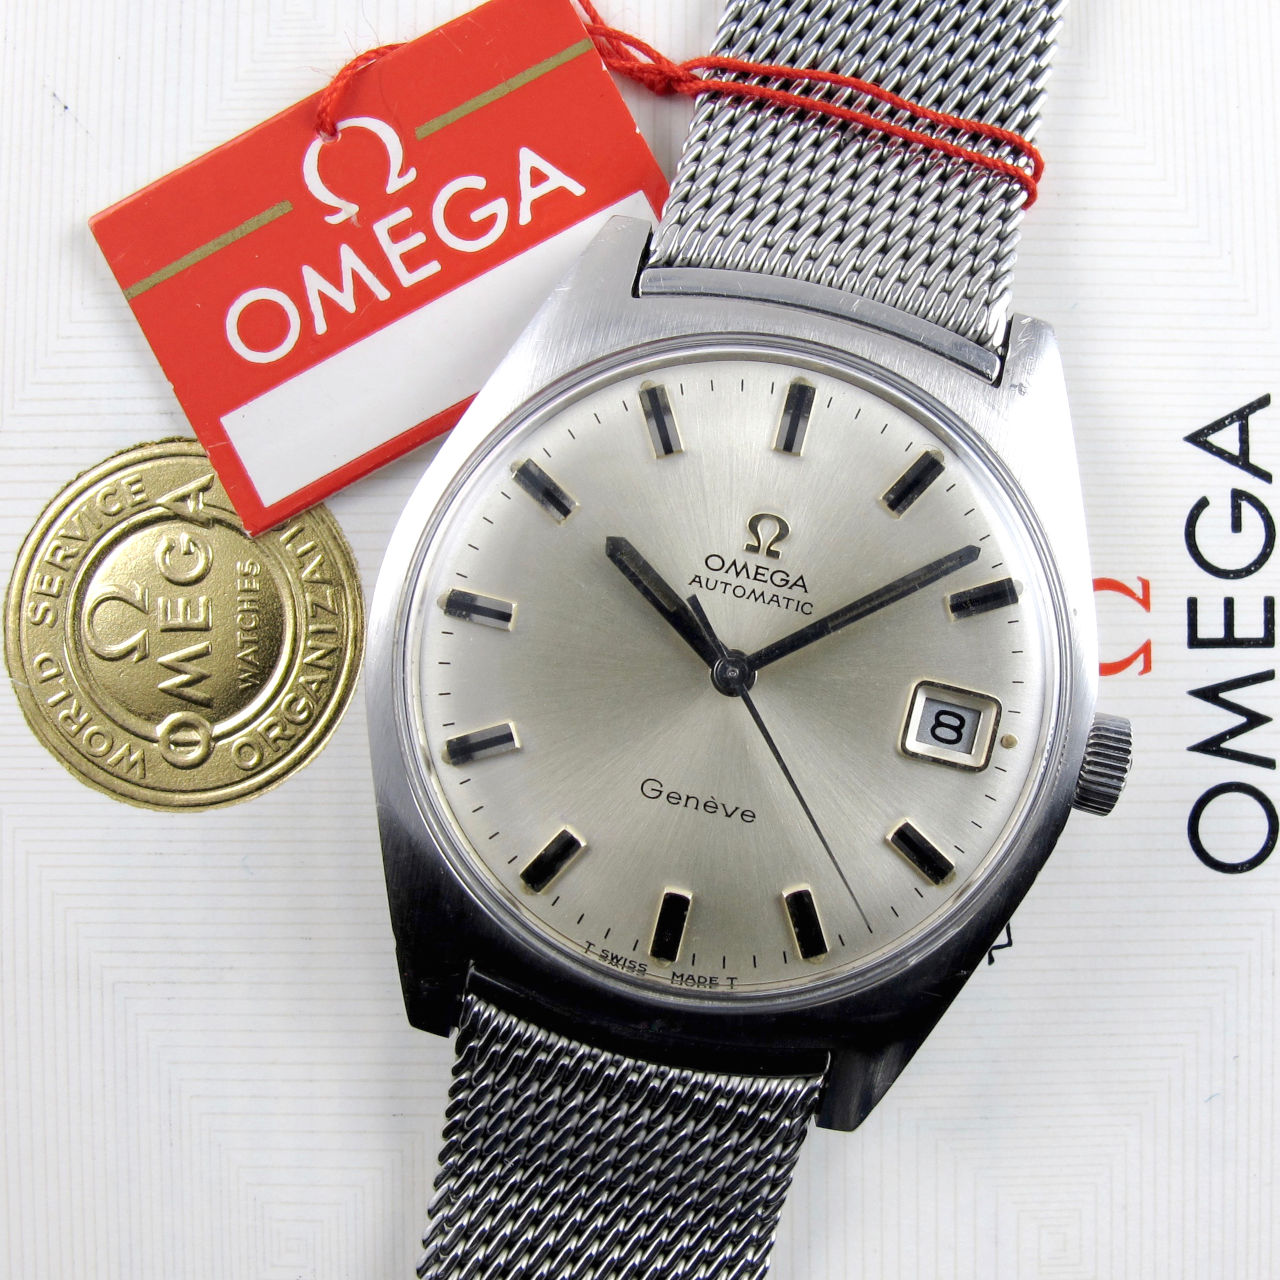 Omega Genève Ref. 166.041 steel vintage wristwatch, sold in 1969